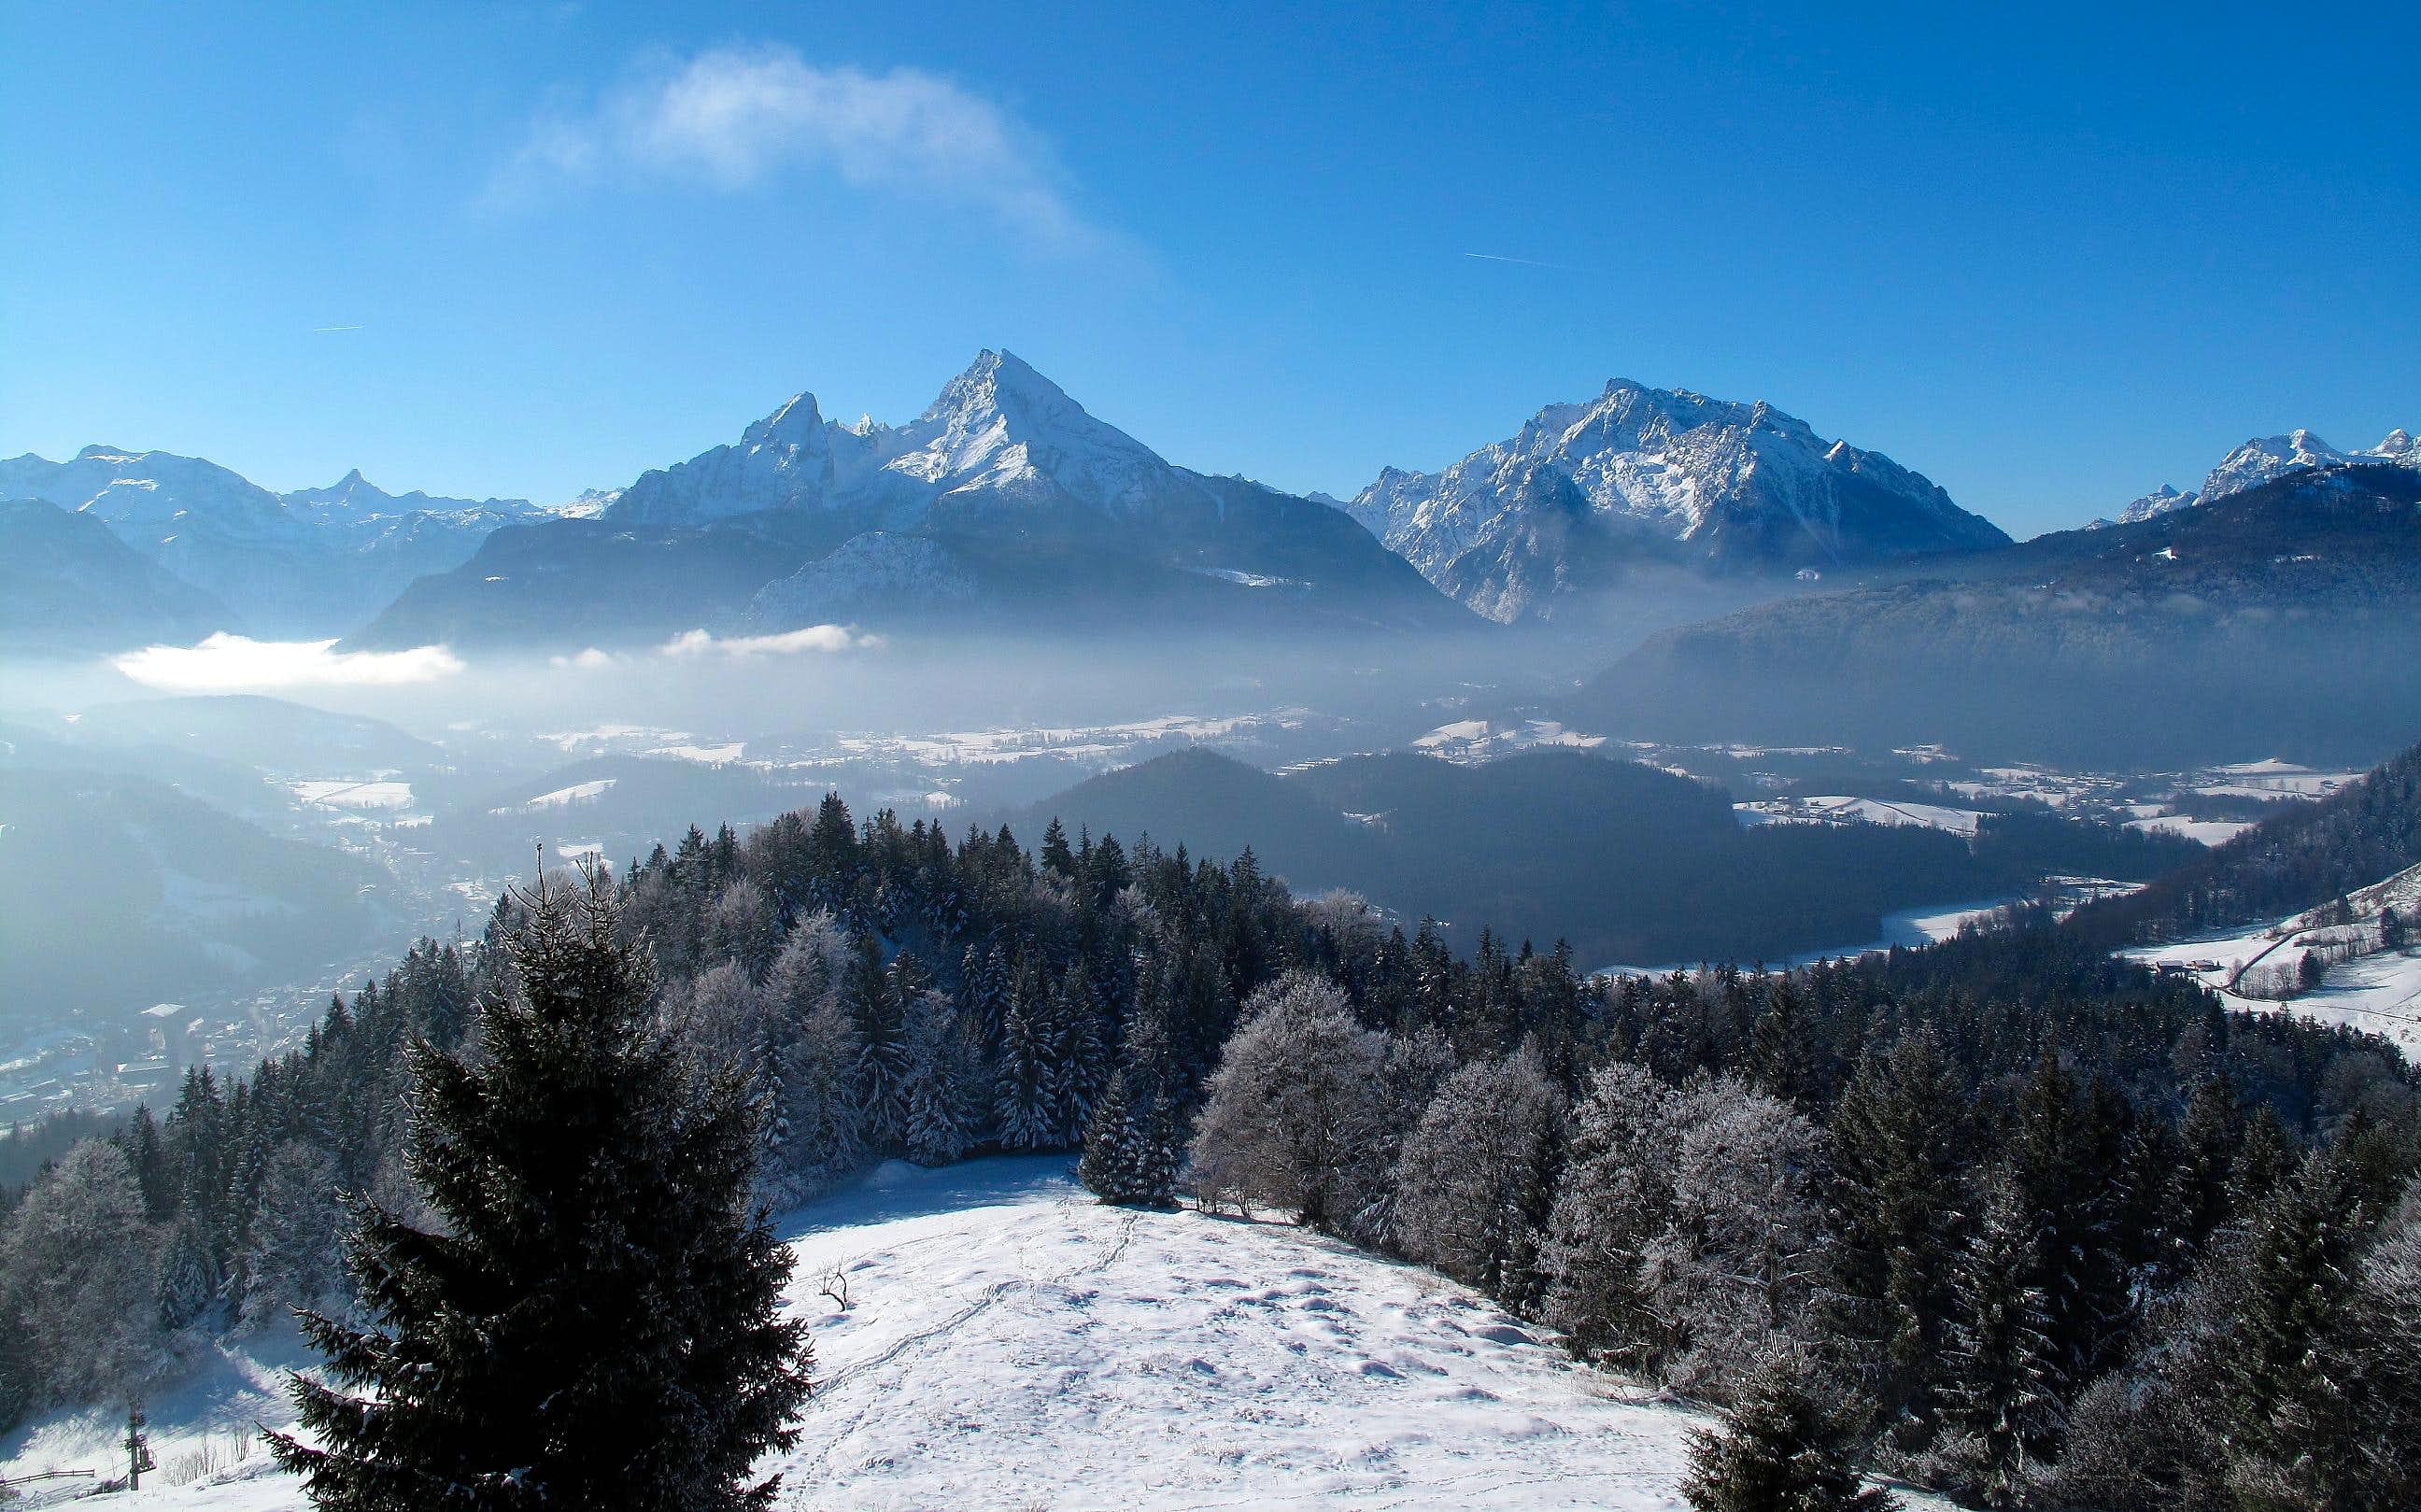 On Kneifelspitze in autumn and winter